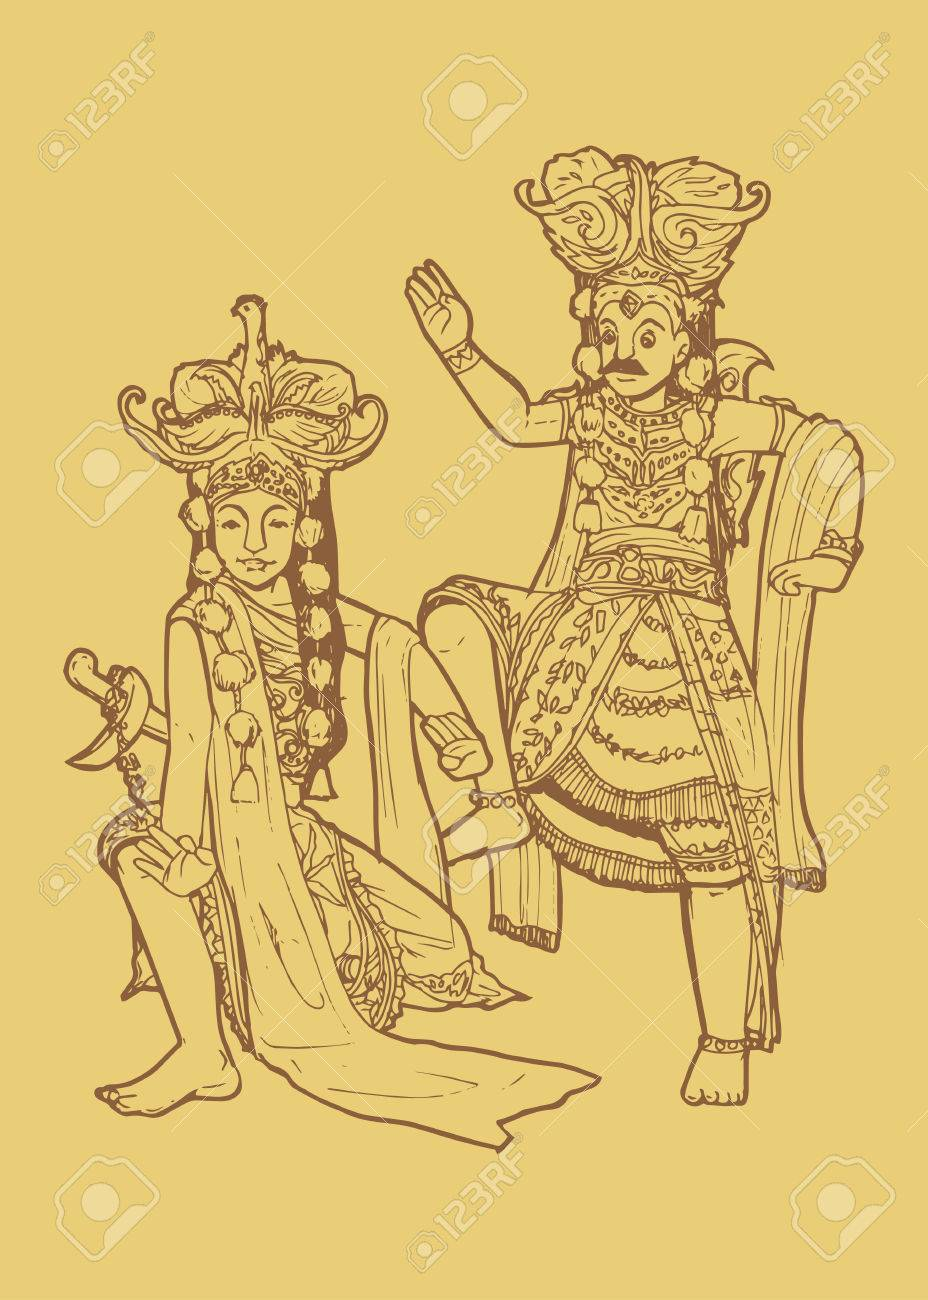 Line art illustration of traditional east java indonesian dance tari topeng or mask dancing stock vector